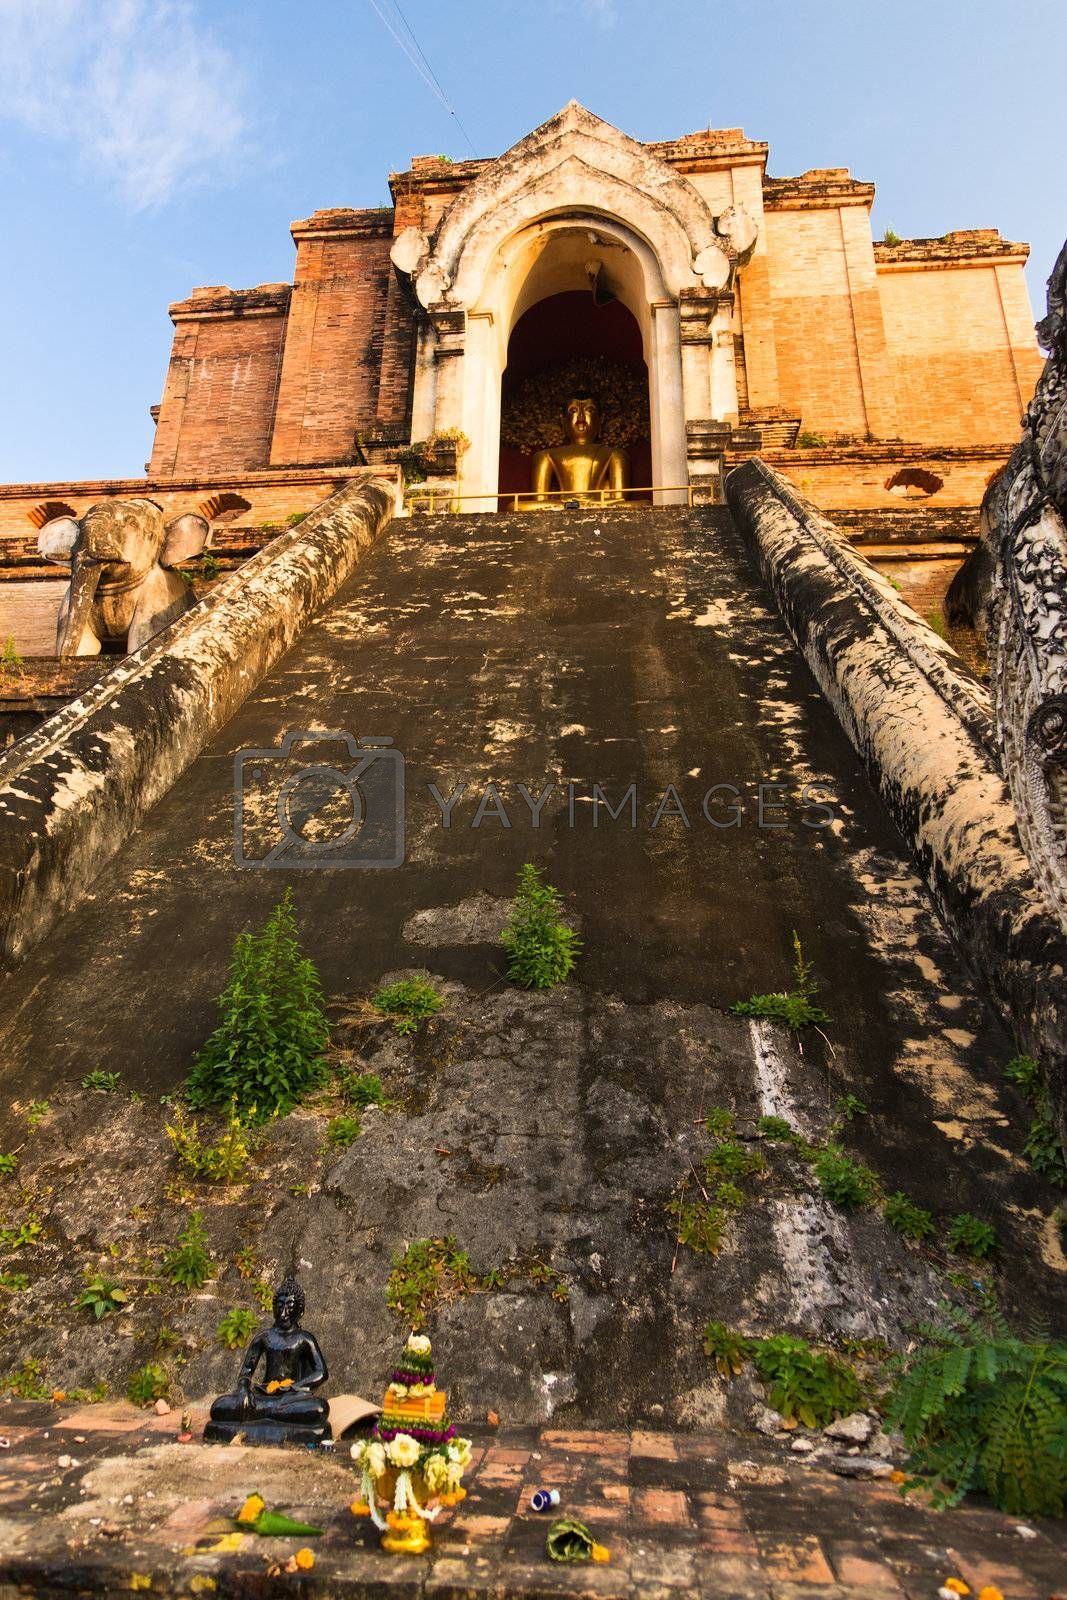 Ancient temple Wat Chedi Luang in Chiang Mai, Thailand